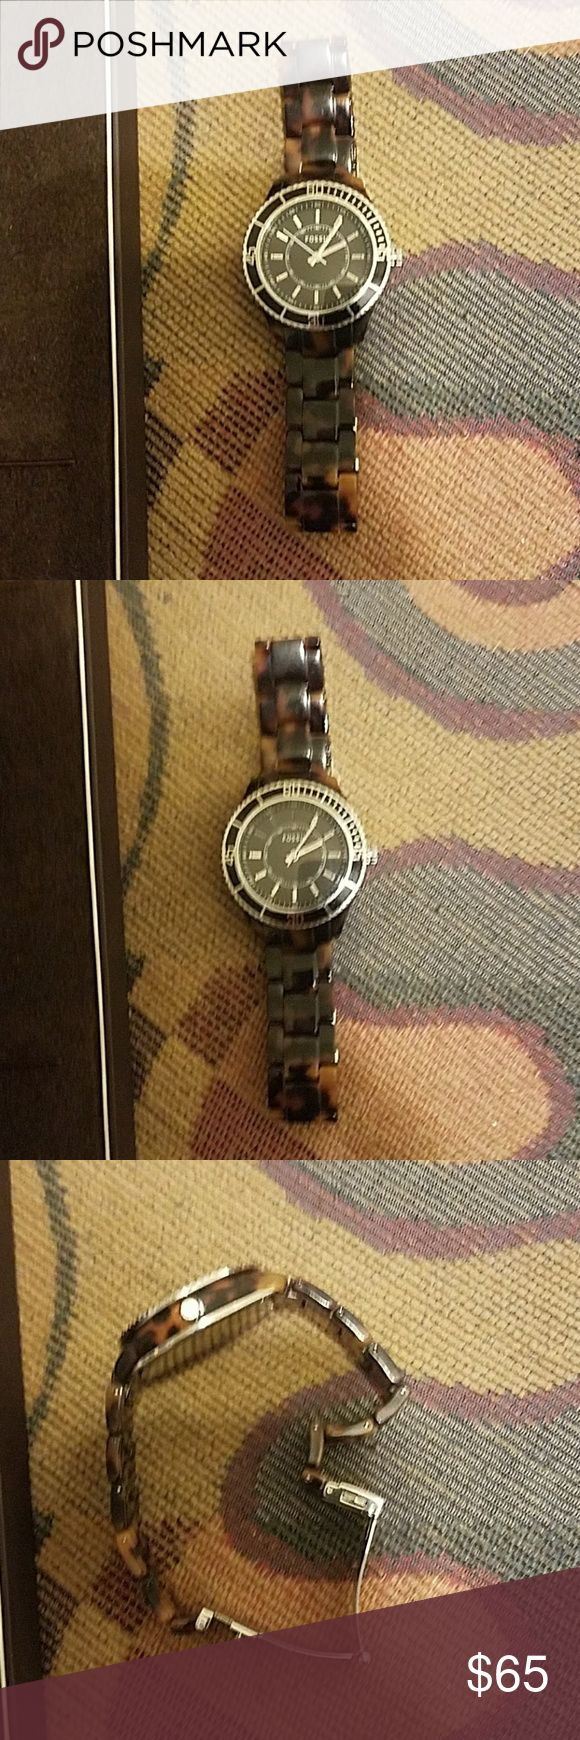 Fossil Tortoise shell watch This watch is in great condition. All the links are there, and has a new battery.  No cracks or scratches.  Make excellent gift. ☕🍷 Fossil Accessories Watches